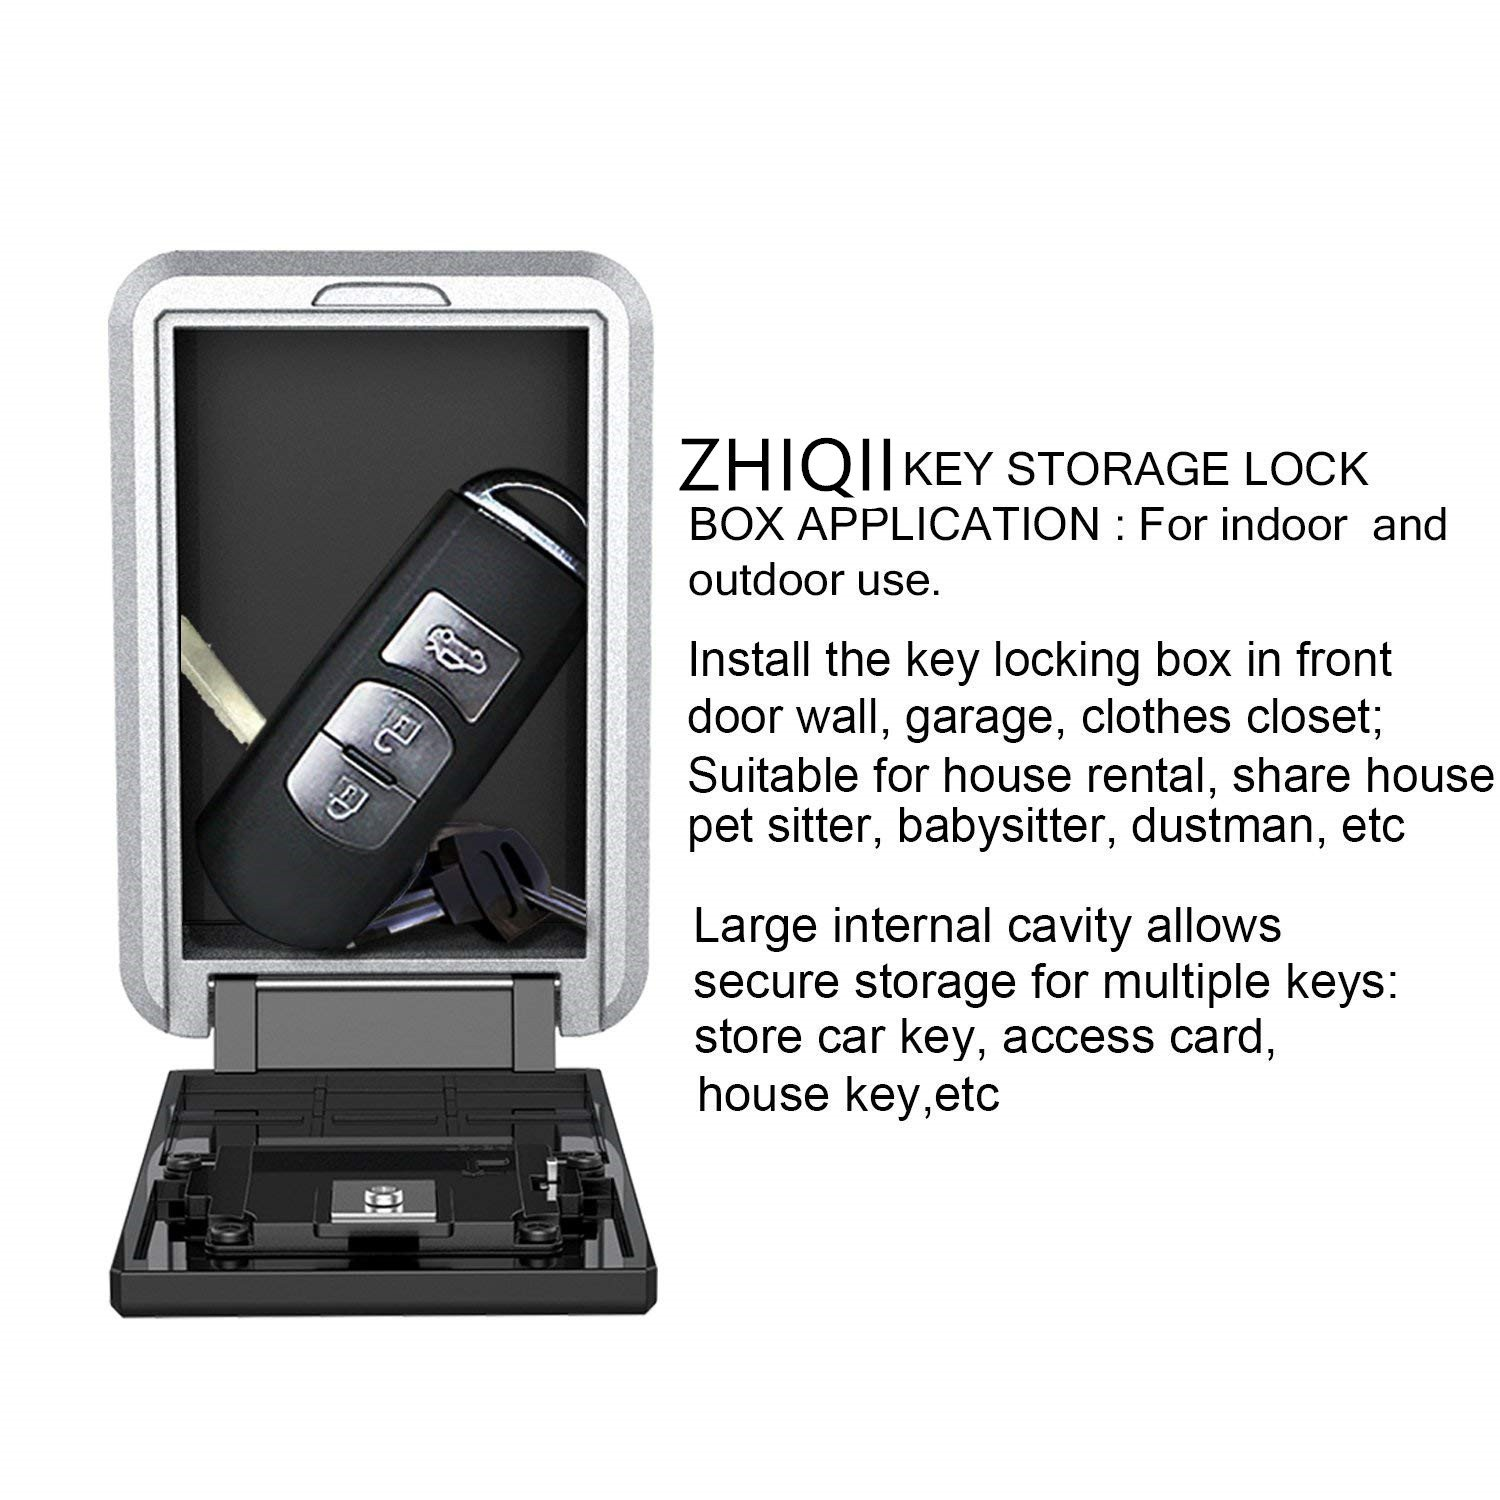 Hide Key Safe Lock Box ZHIQII Wall Mount Push Button Lock Stores up to 6 Keys on doorknob 4 Digit Combination Exterior Outdoor Waterproof Secure Box Keys Holder for Home/House use Key Storage Lockbox by ZHIQII (Image #7)